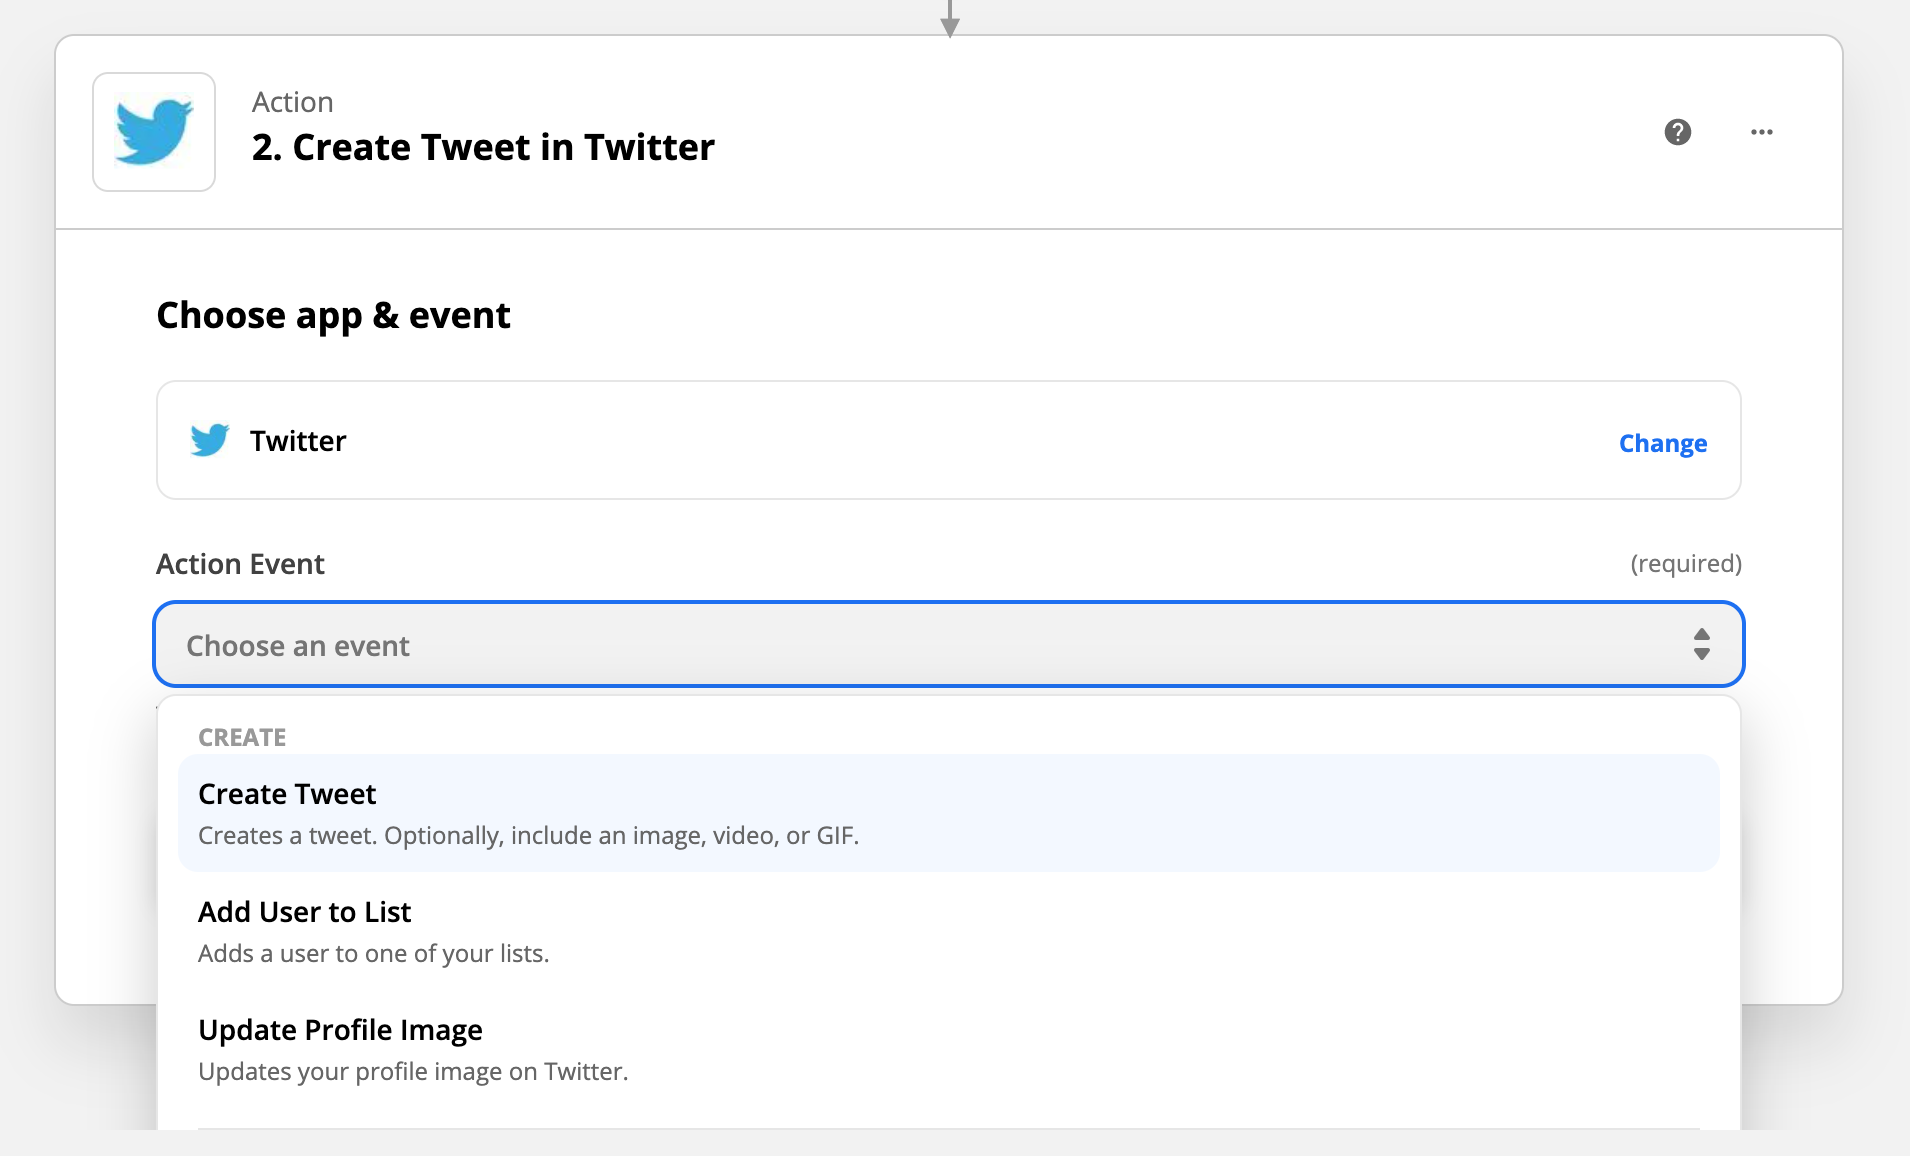 Select Create Tweet for Twitter trigger.